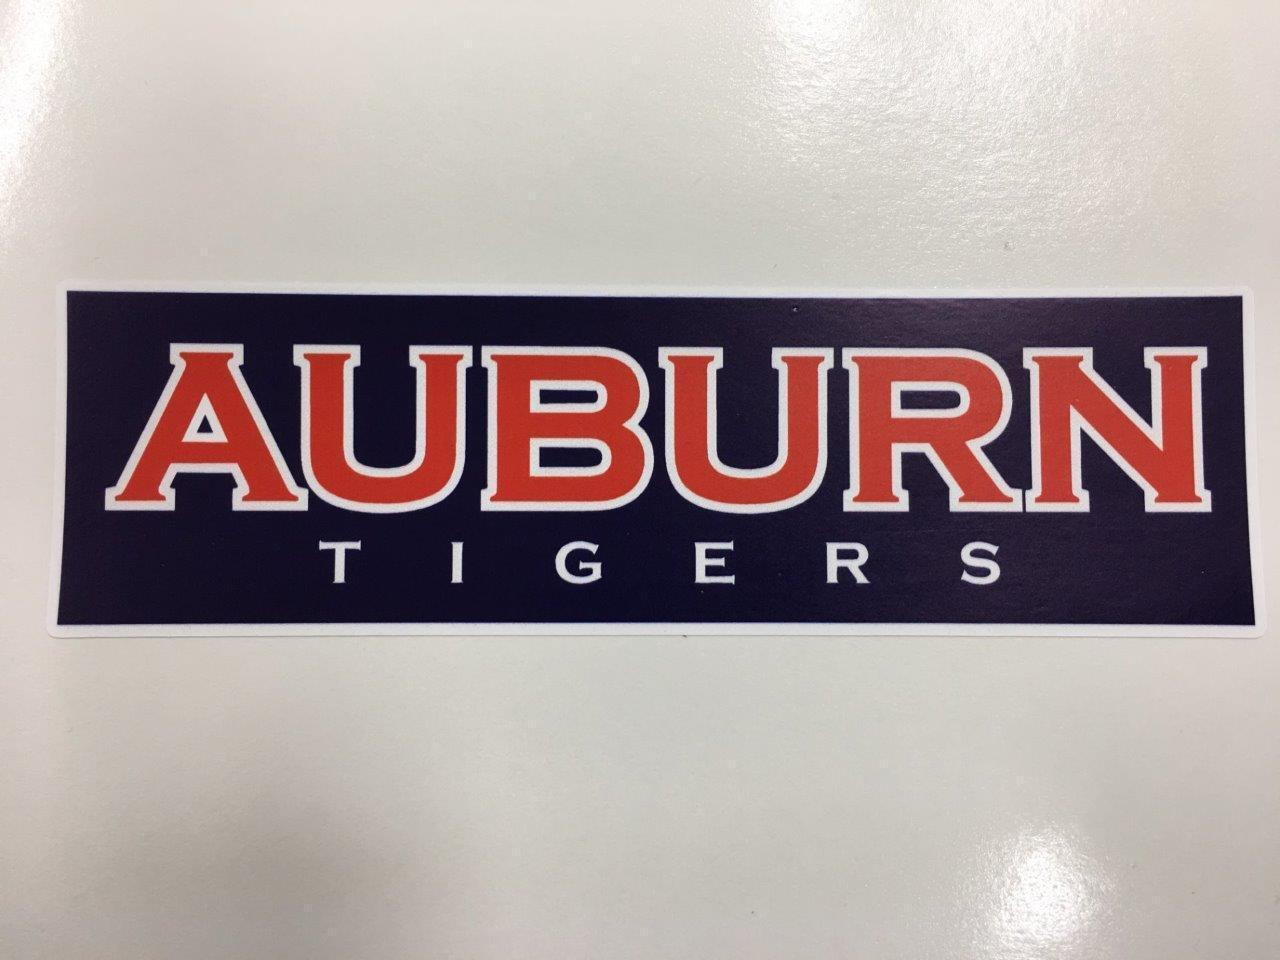 Auburn Tigers cornhole board or vehicle decal(s)